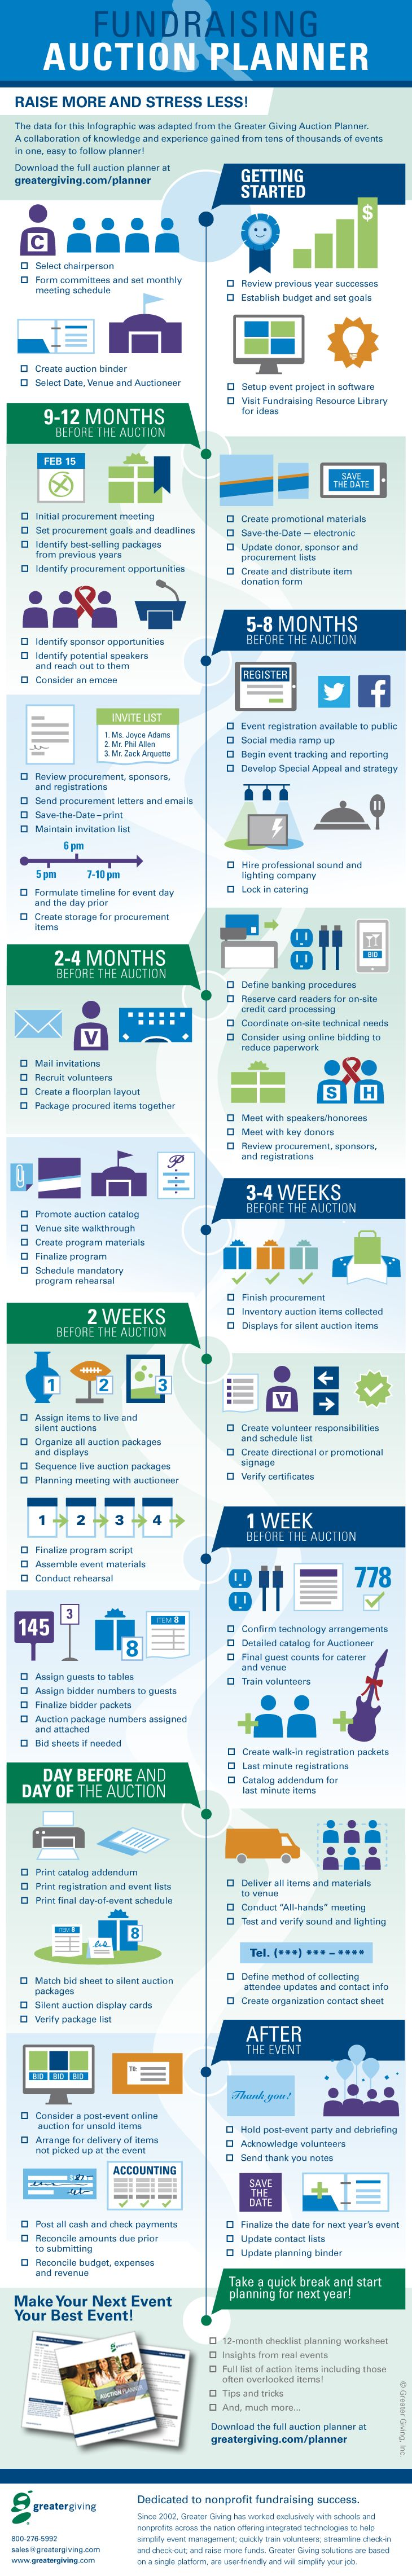 Fundraising Auction Planner Infographic